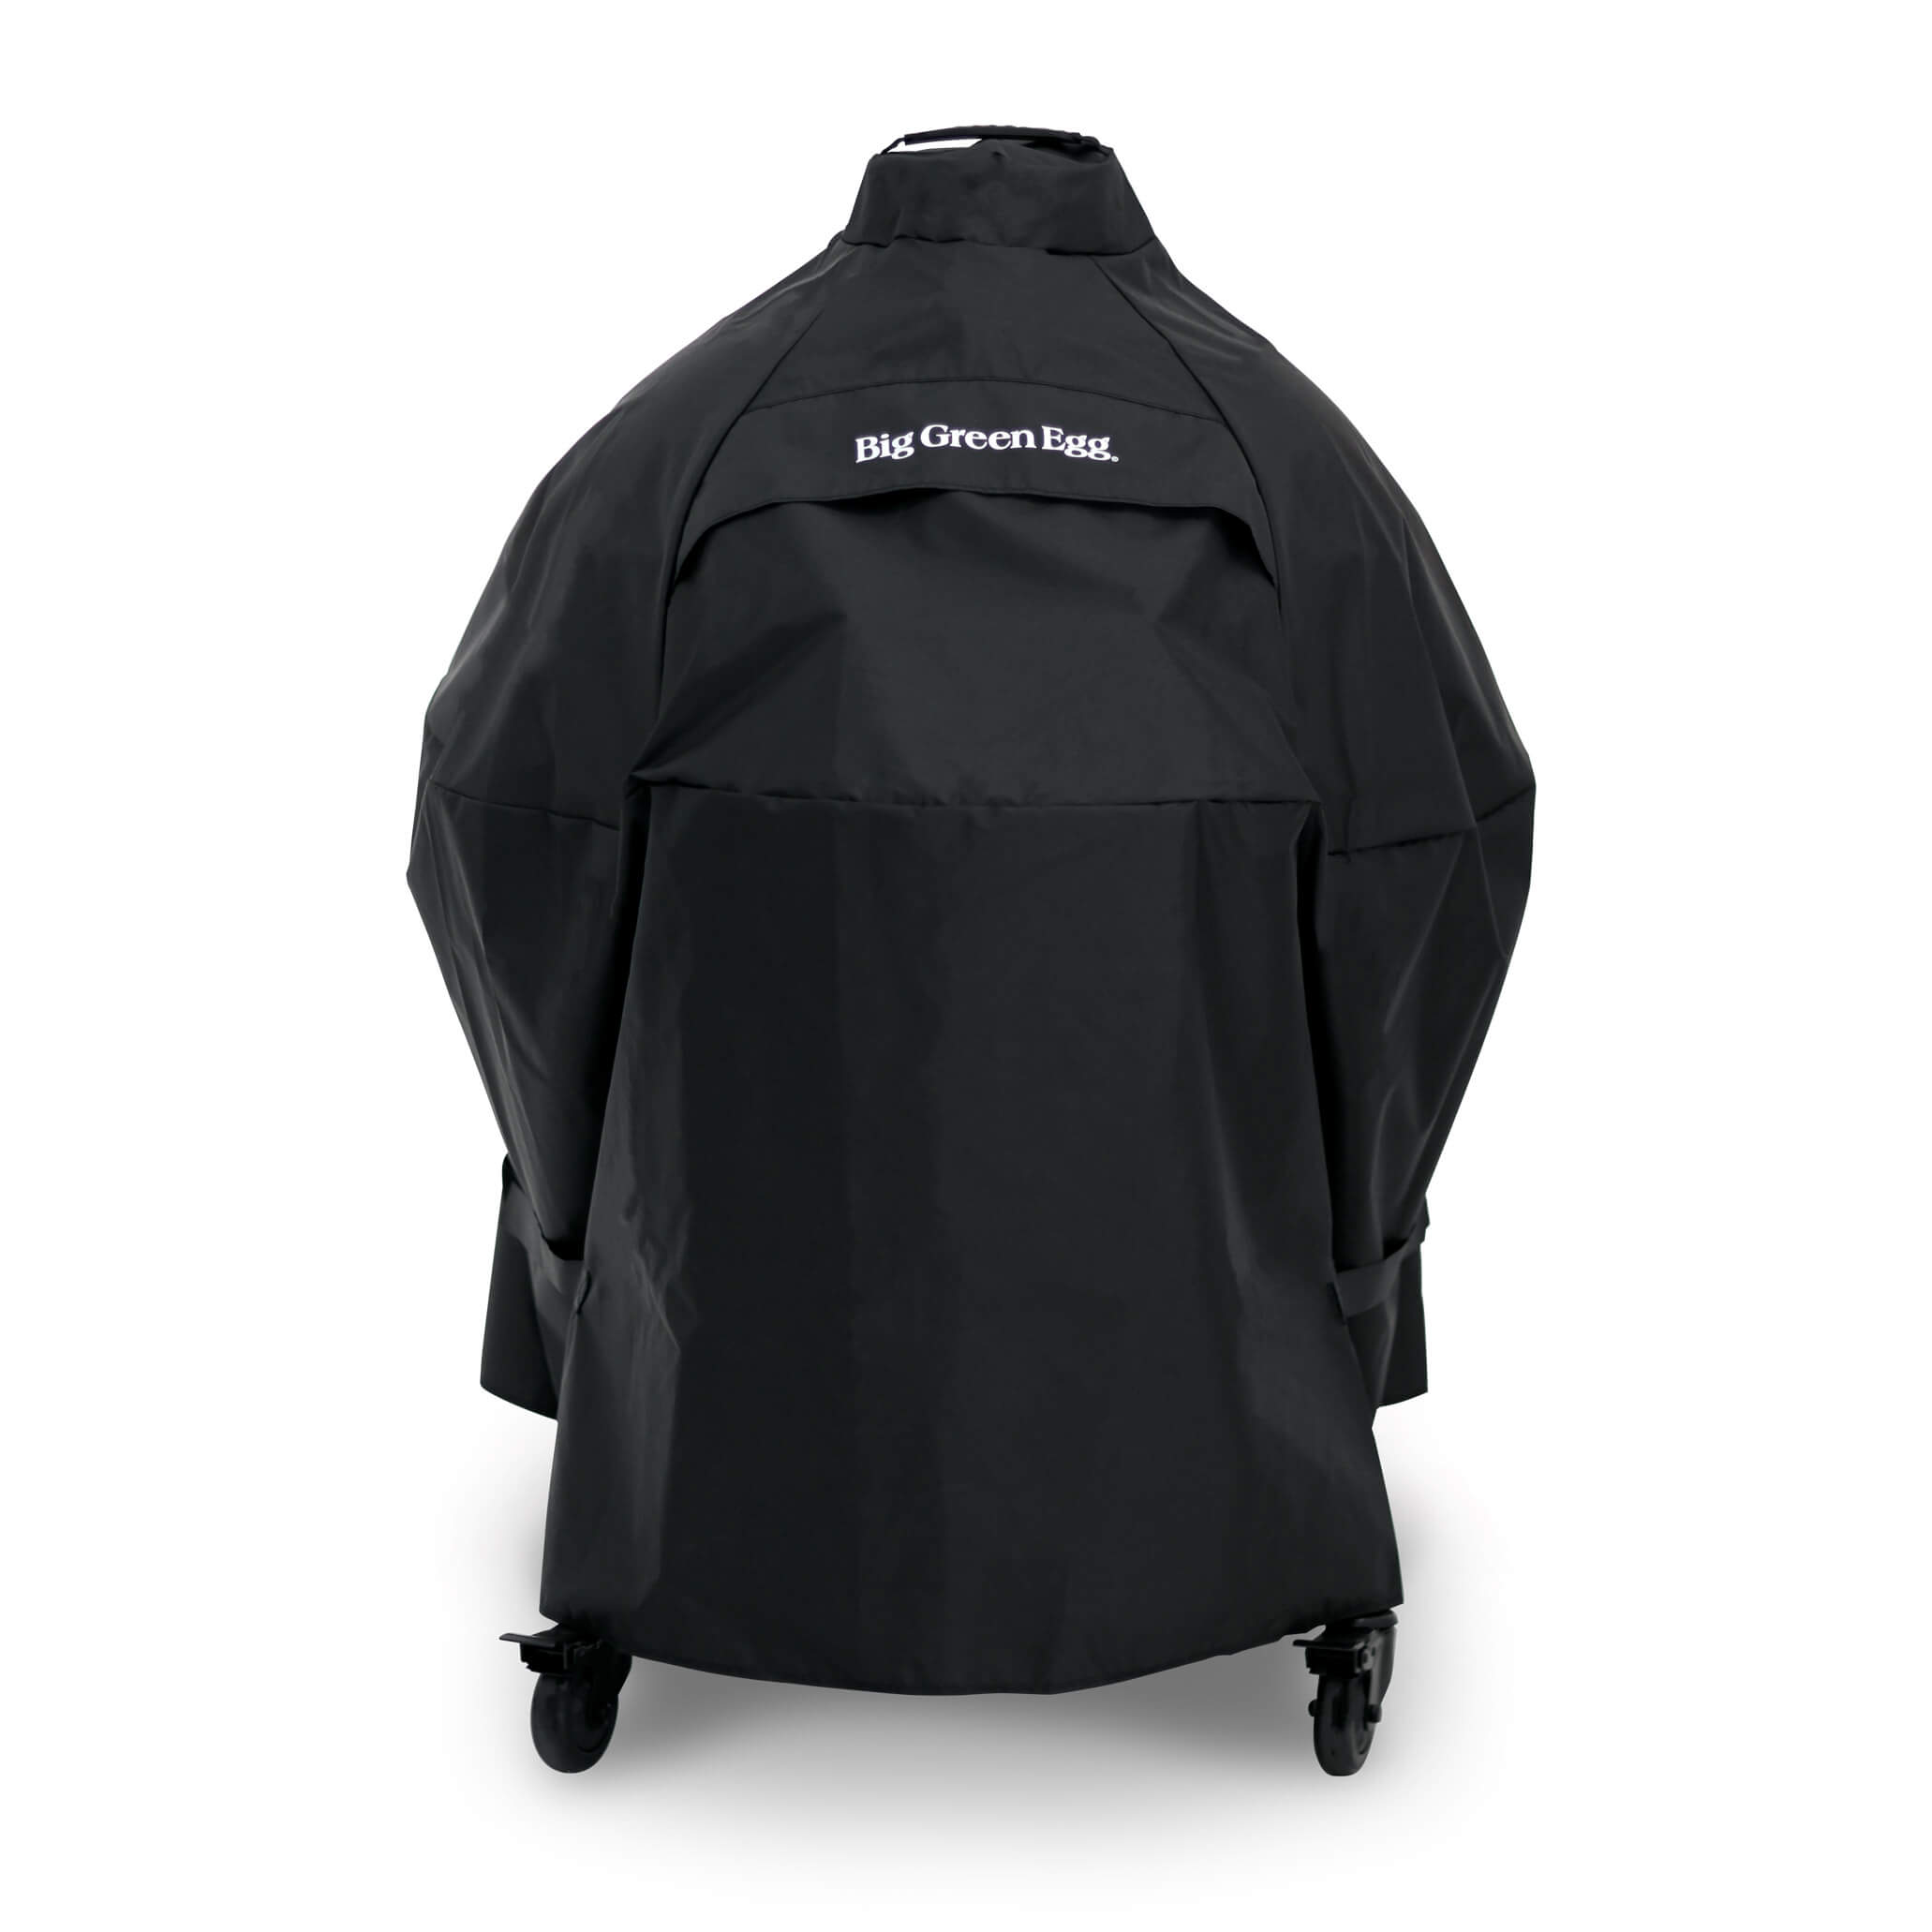 Large Ventilated Cover